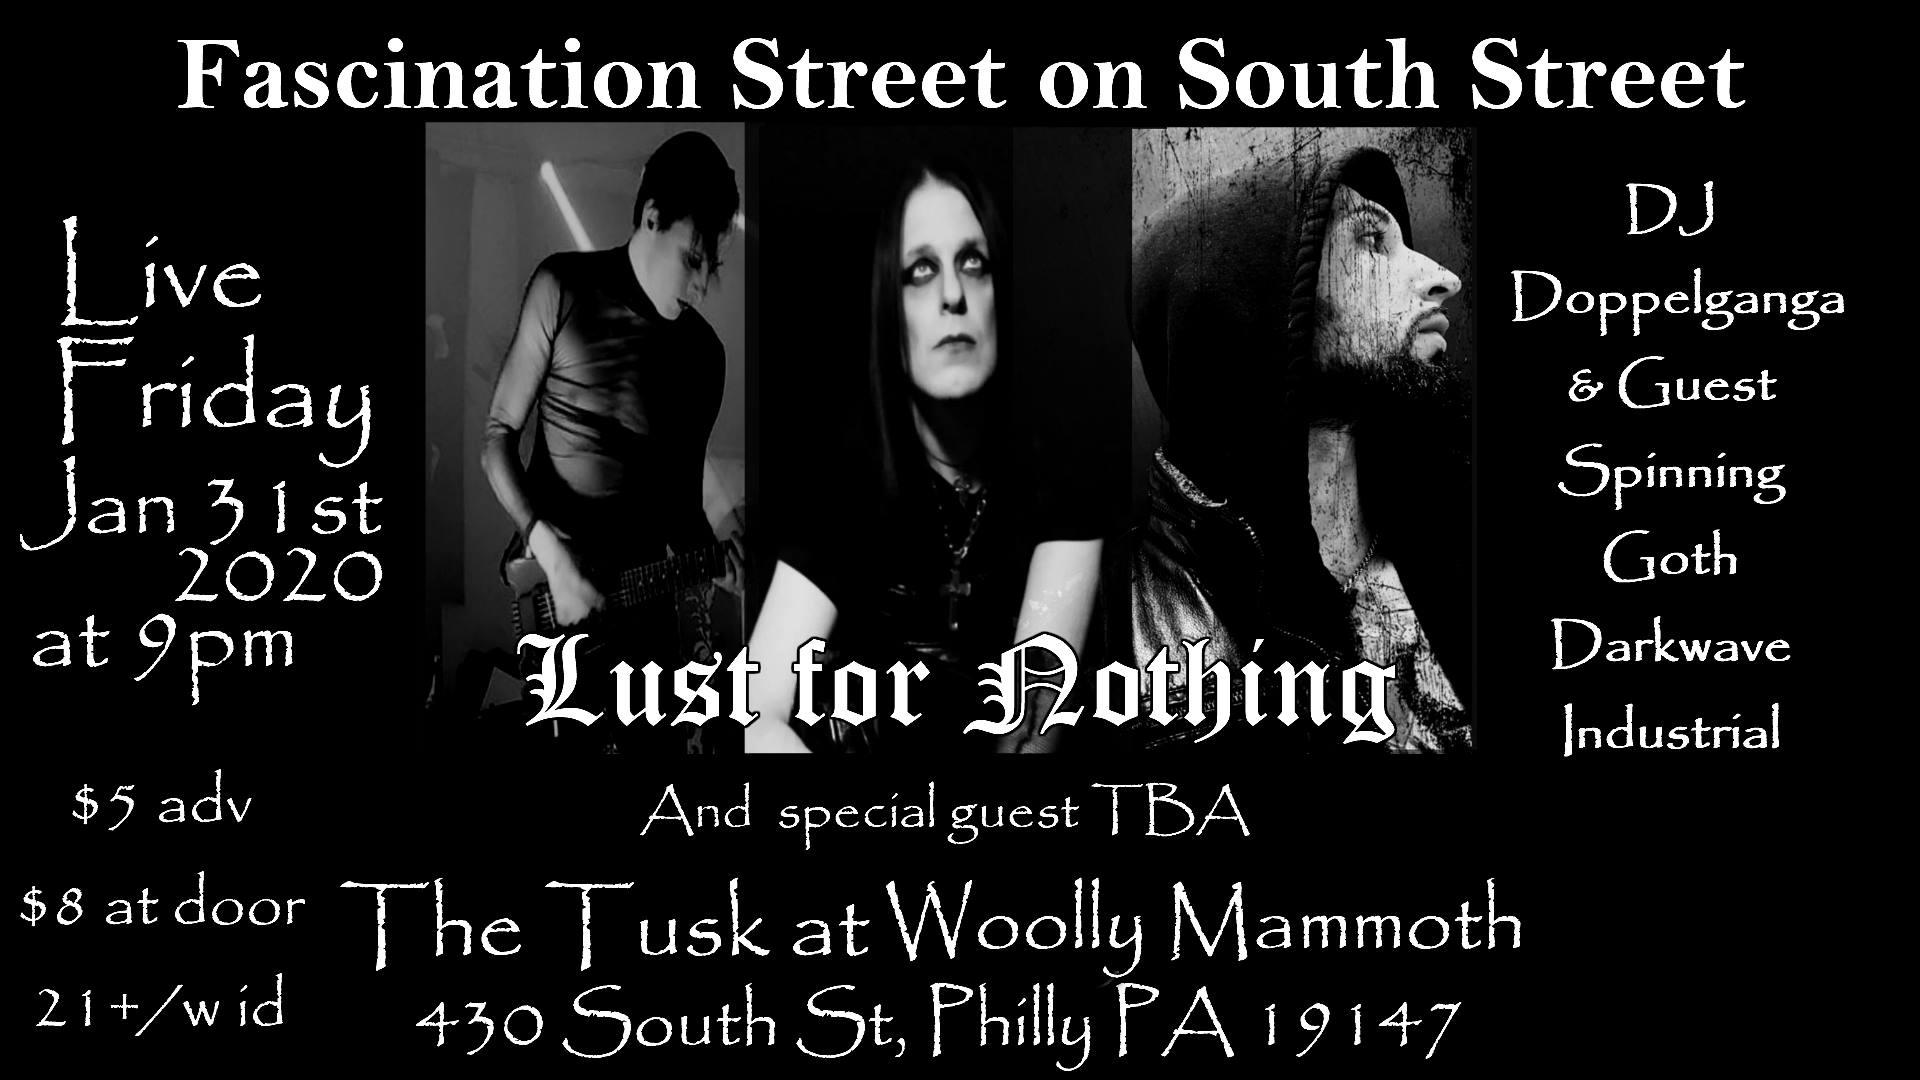 Fascination St on South St / Live Lust for Nothing